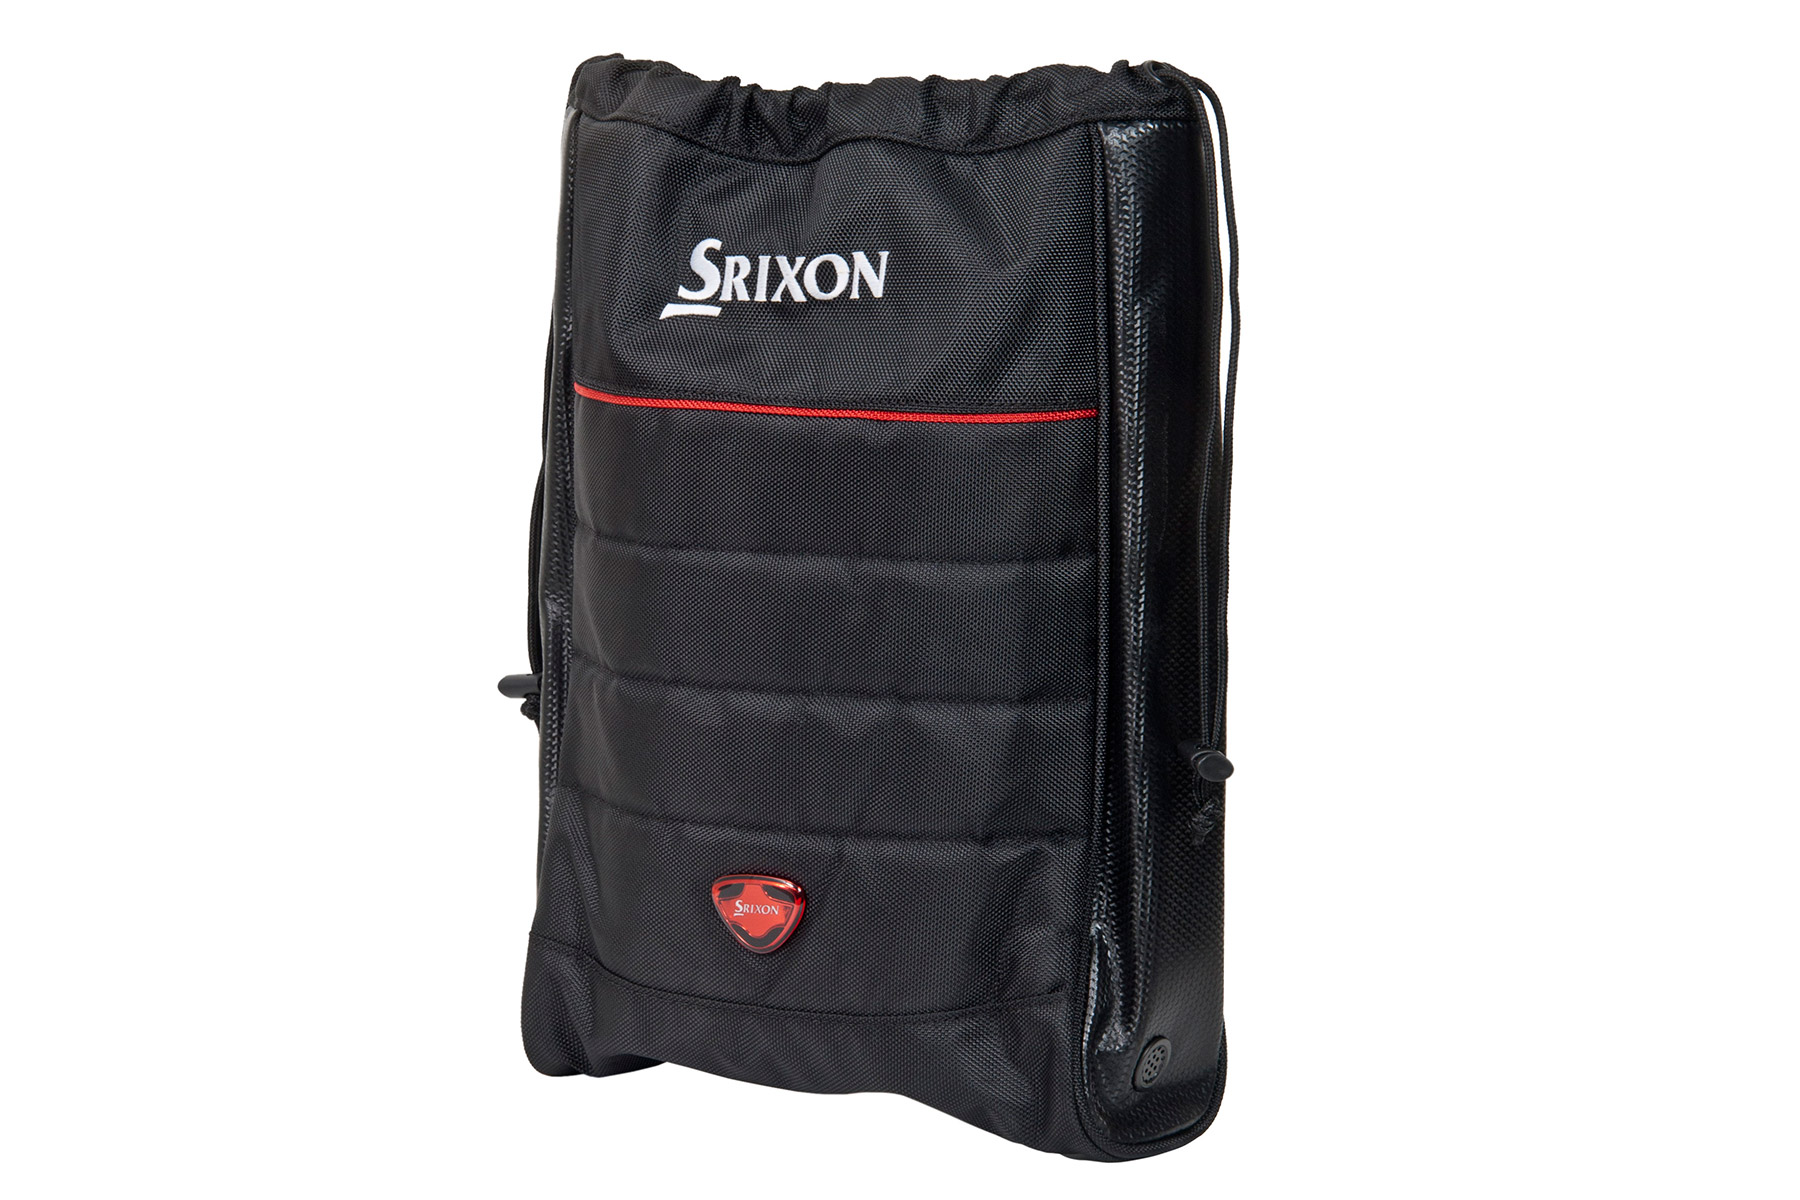 Srixon Shoe Bag | Online Golf